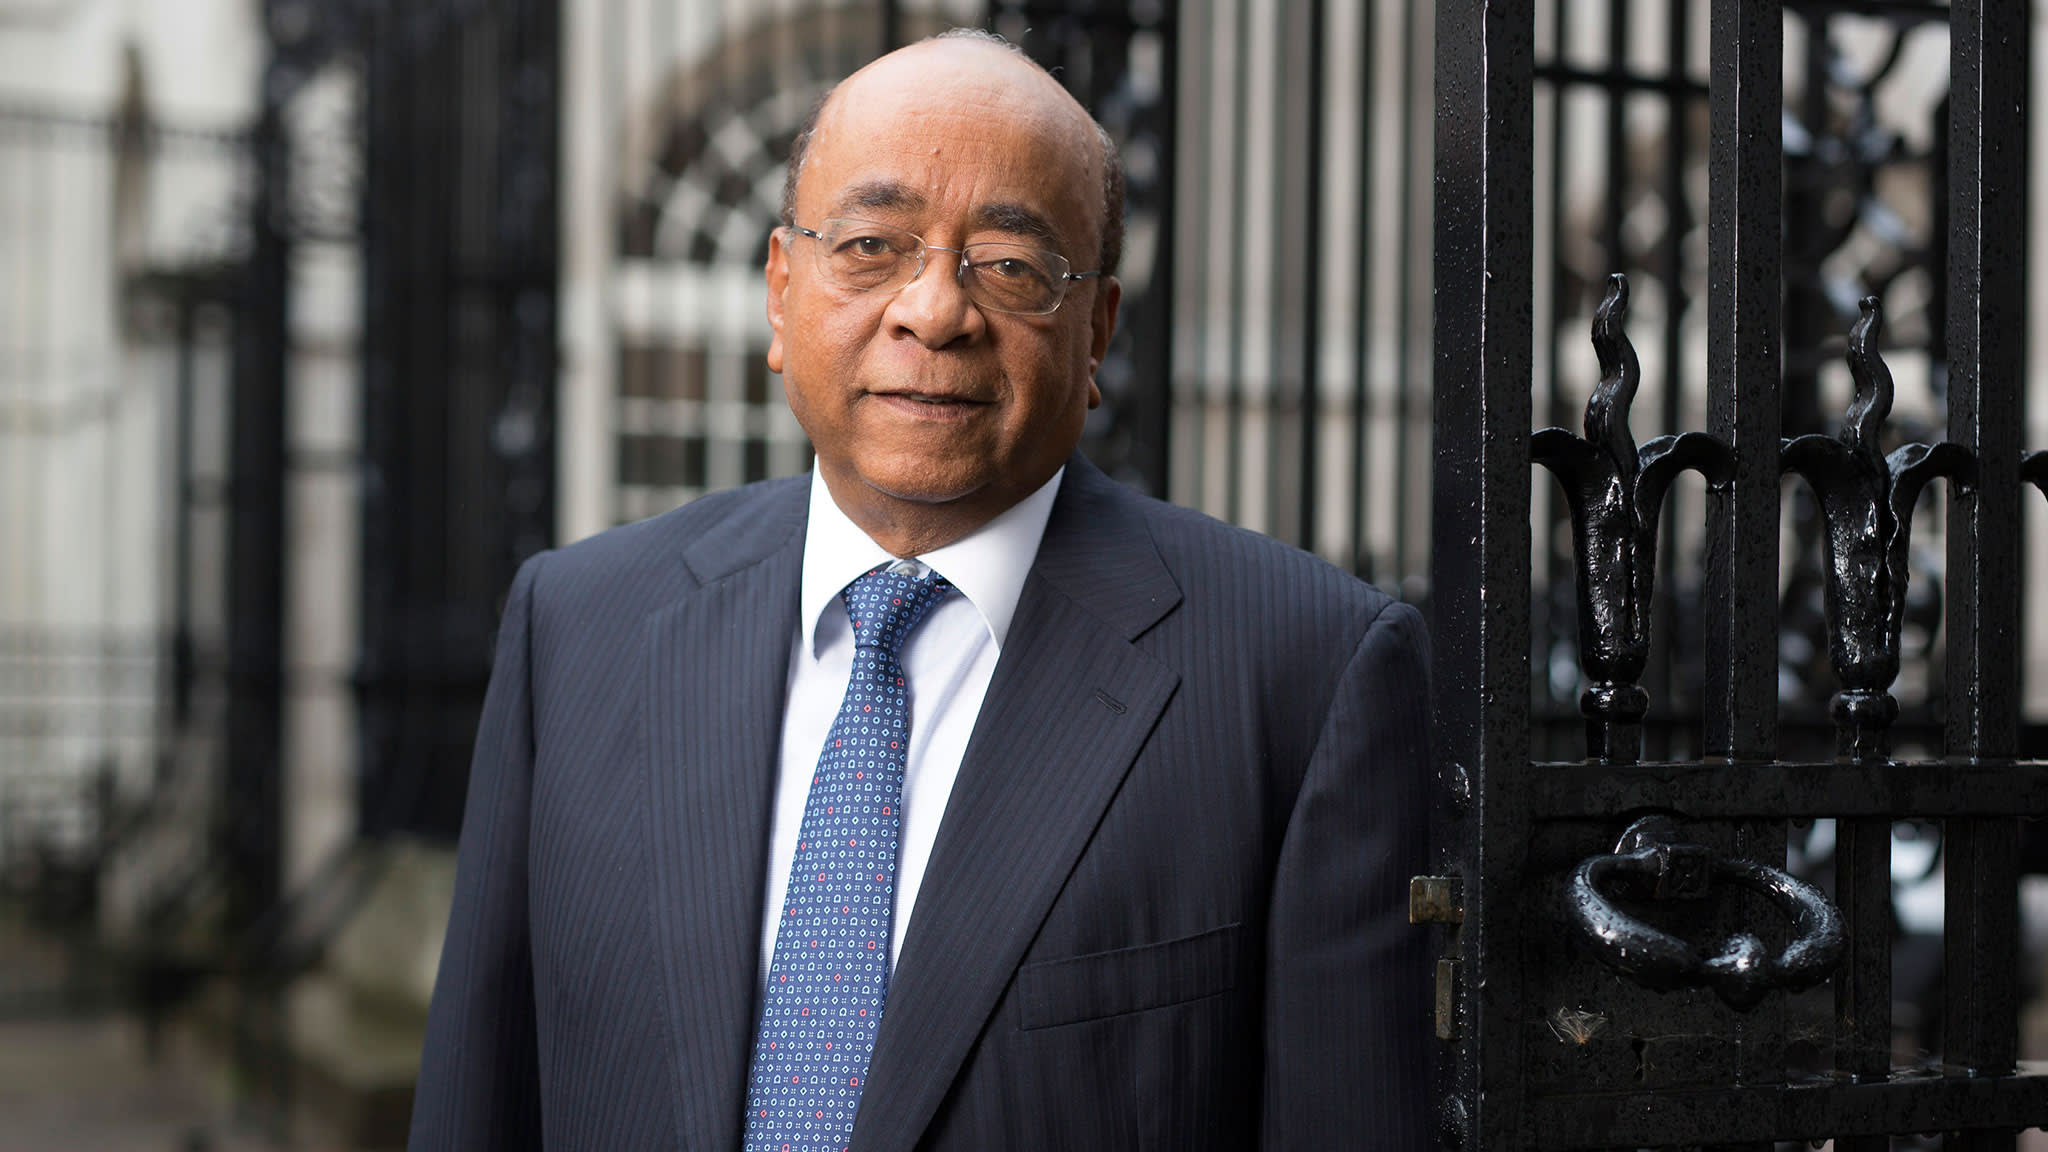 Role models: Mo Ibrahim describes his prize as a 'reward for good behaviour'